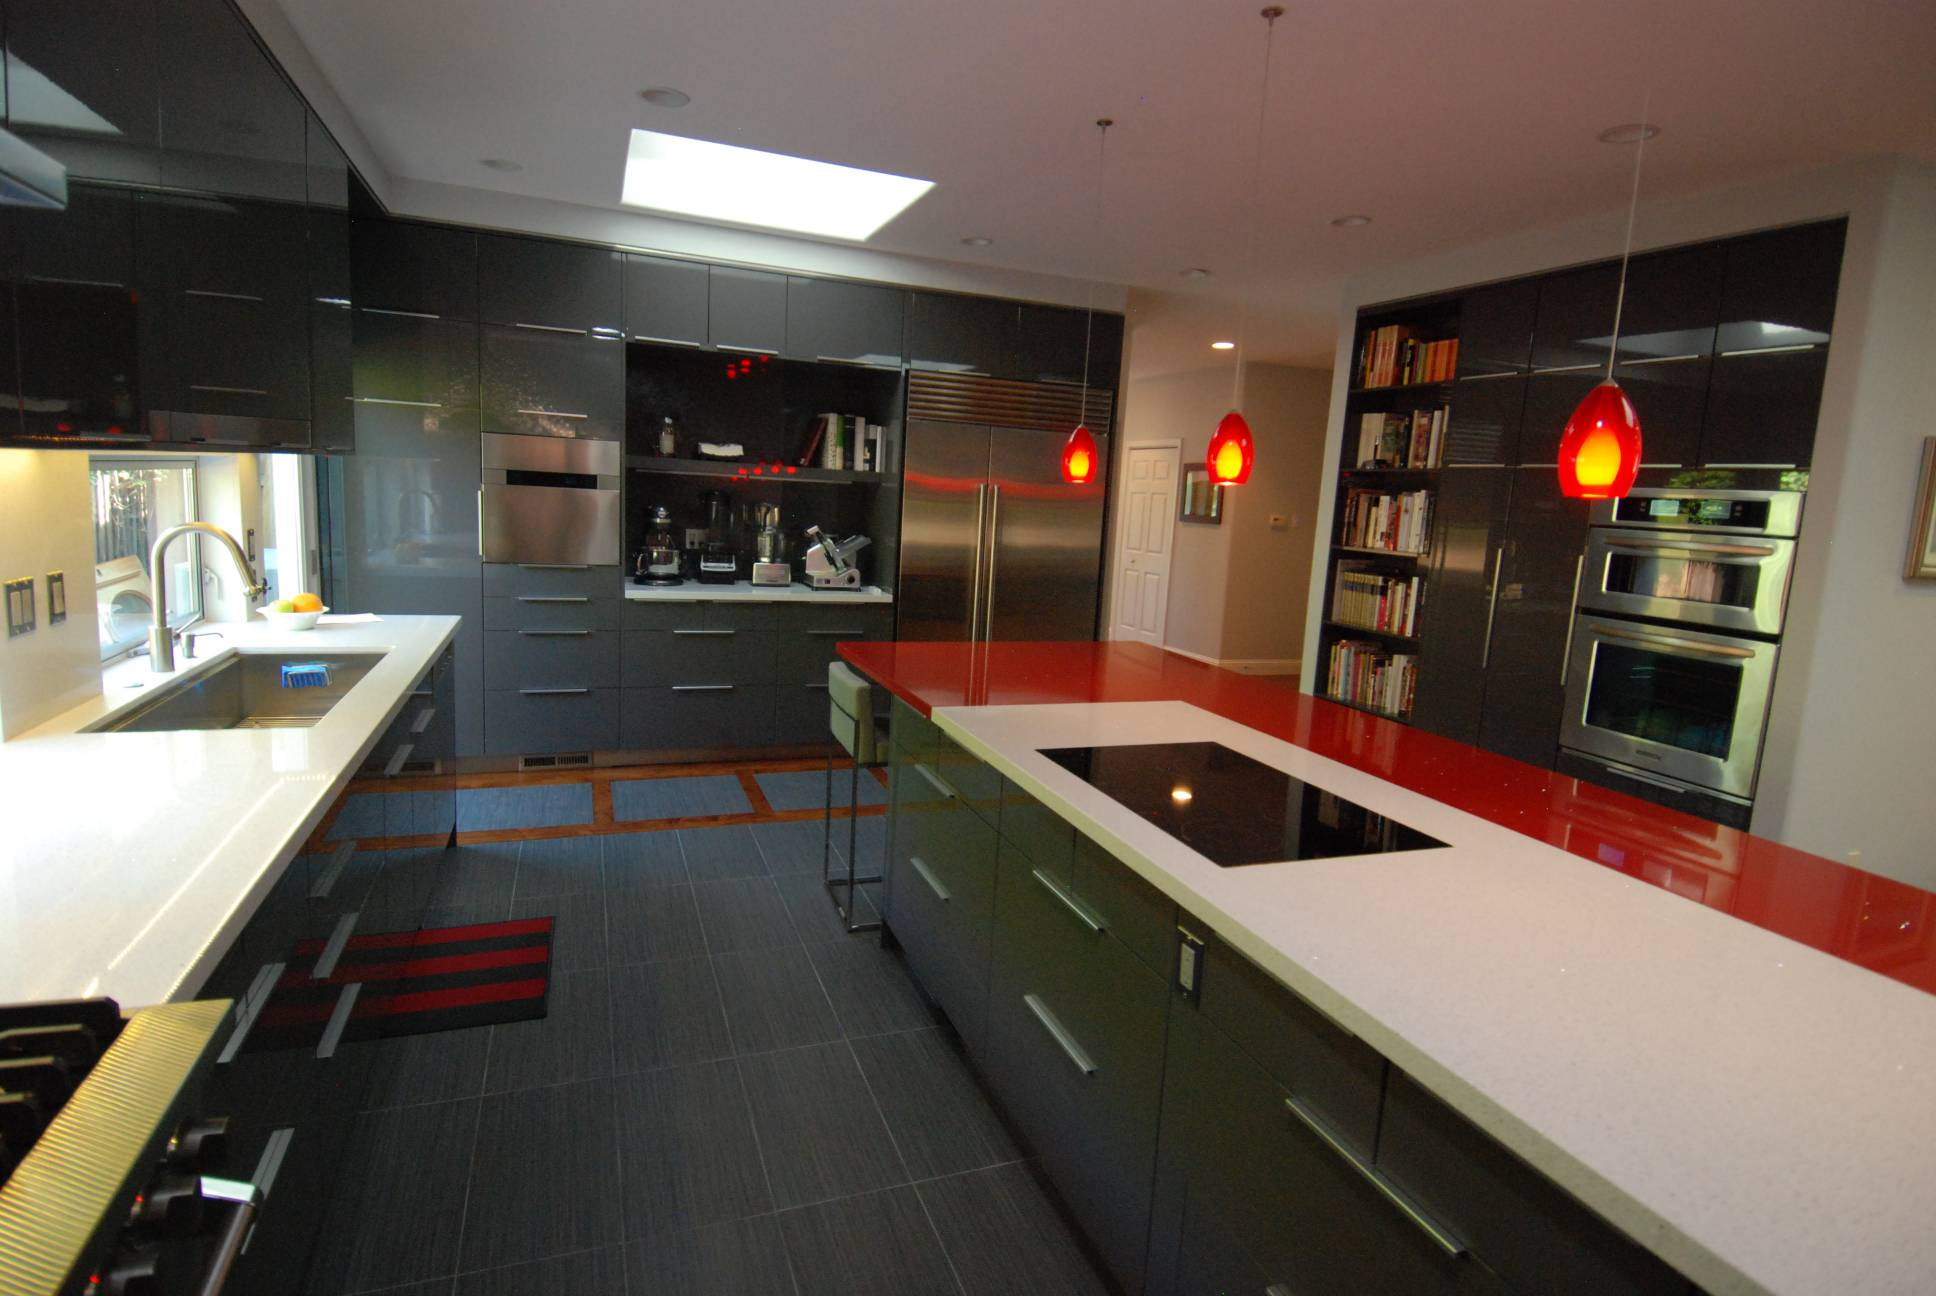 Modern kitchen grey countertops cabinetry hanging lamps, best interior design, Los Altos